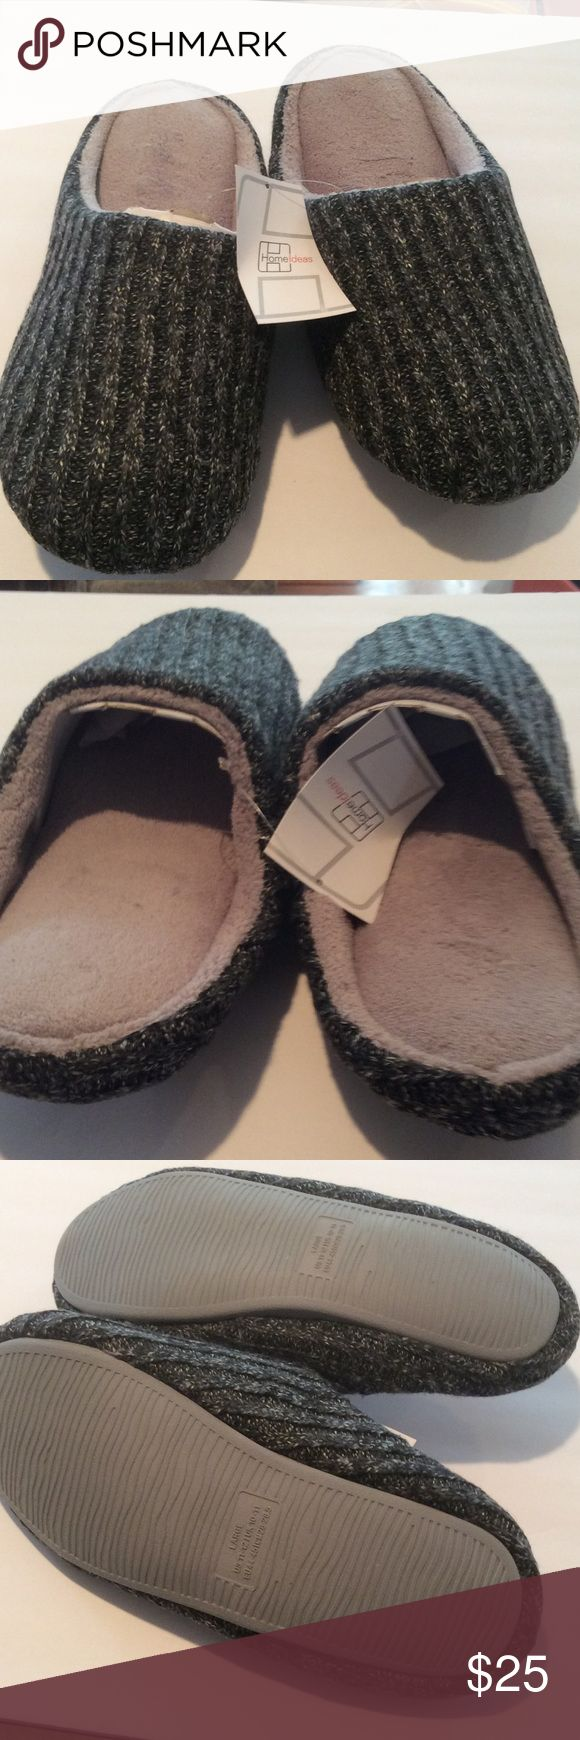 NEW MENS Slippers Brand new, size Large, so worm, light & soft Shoes #MensSlippers